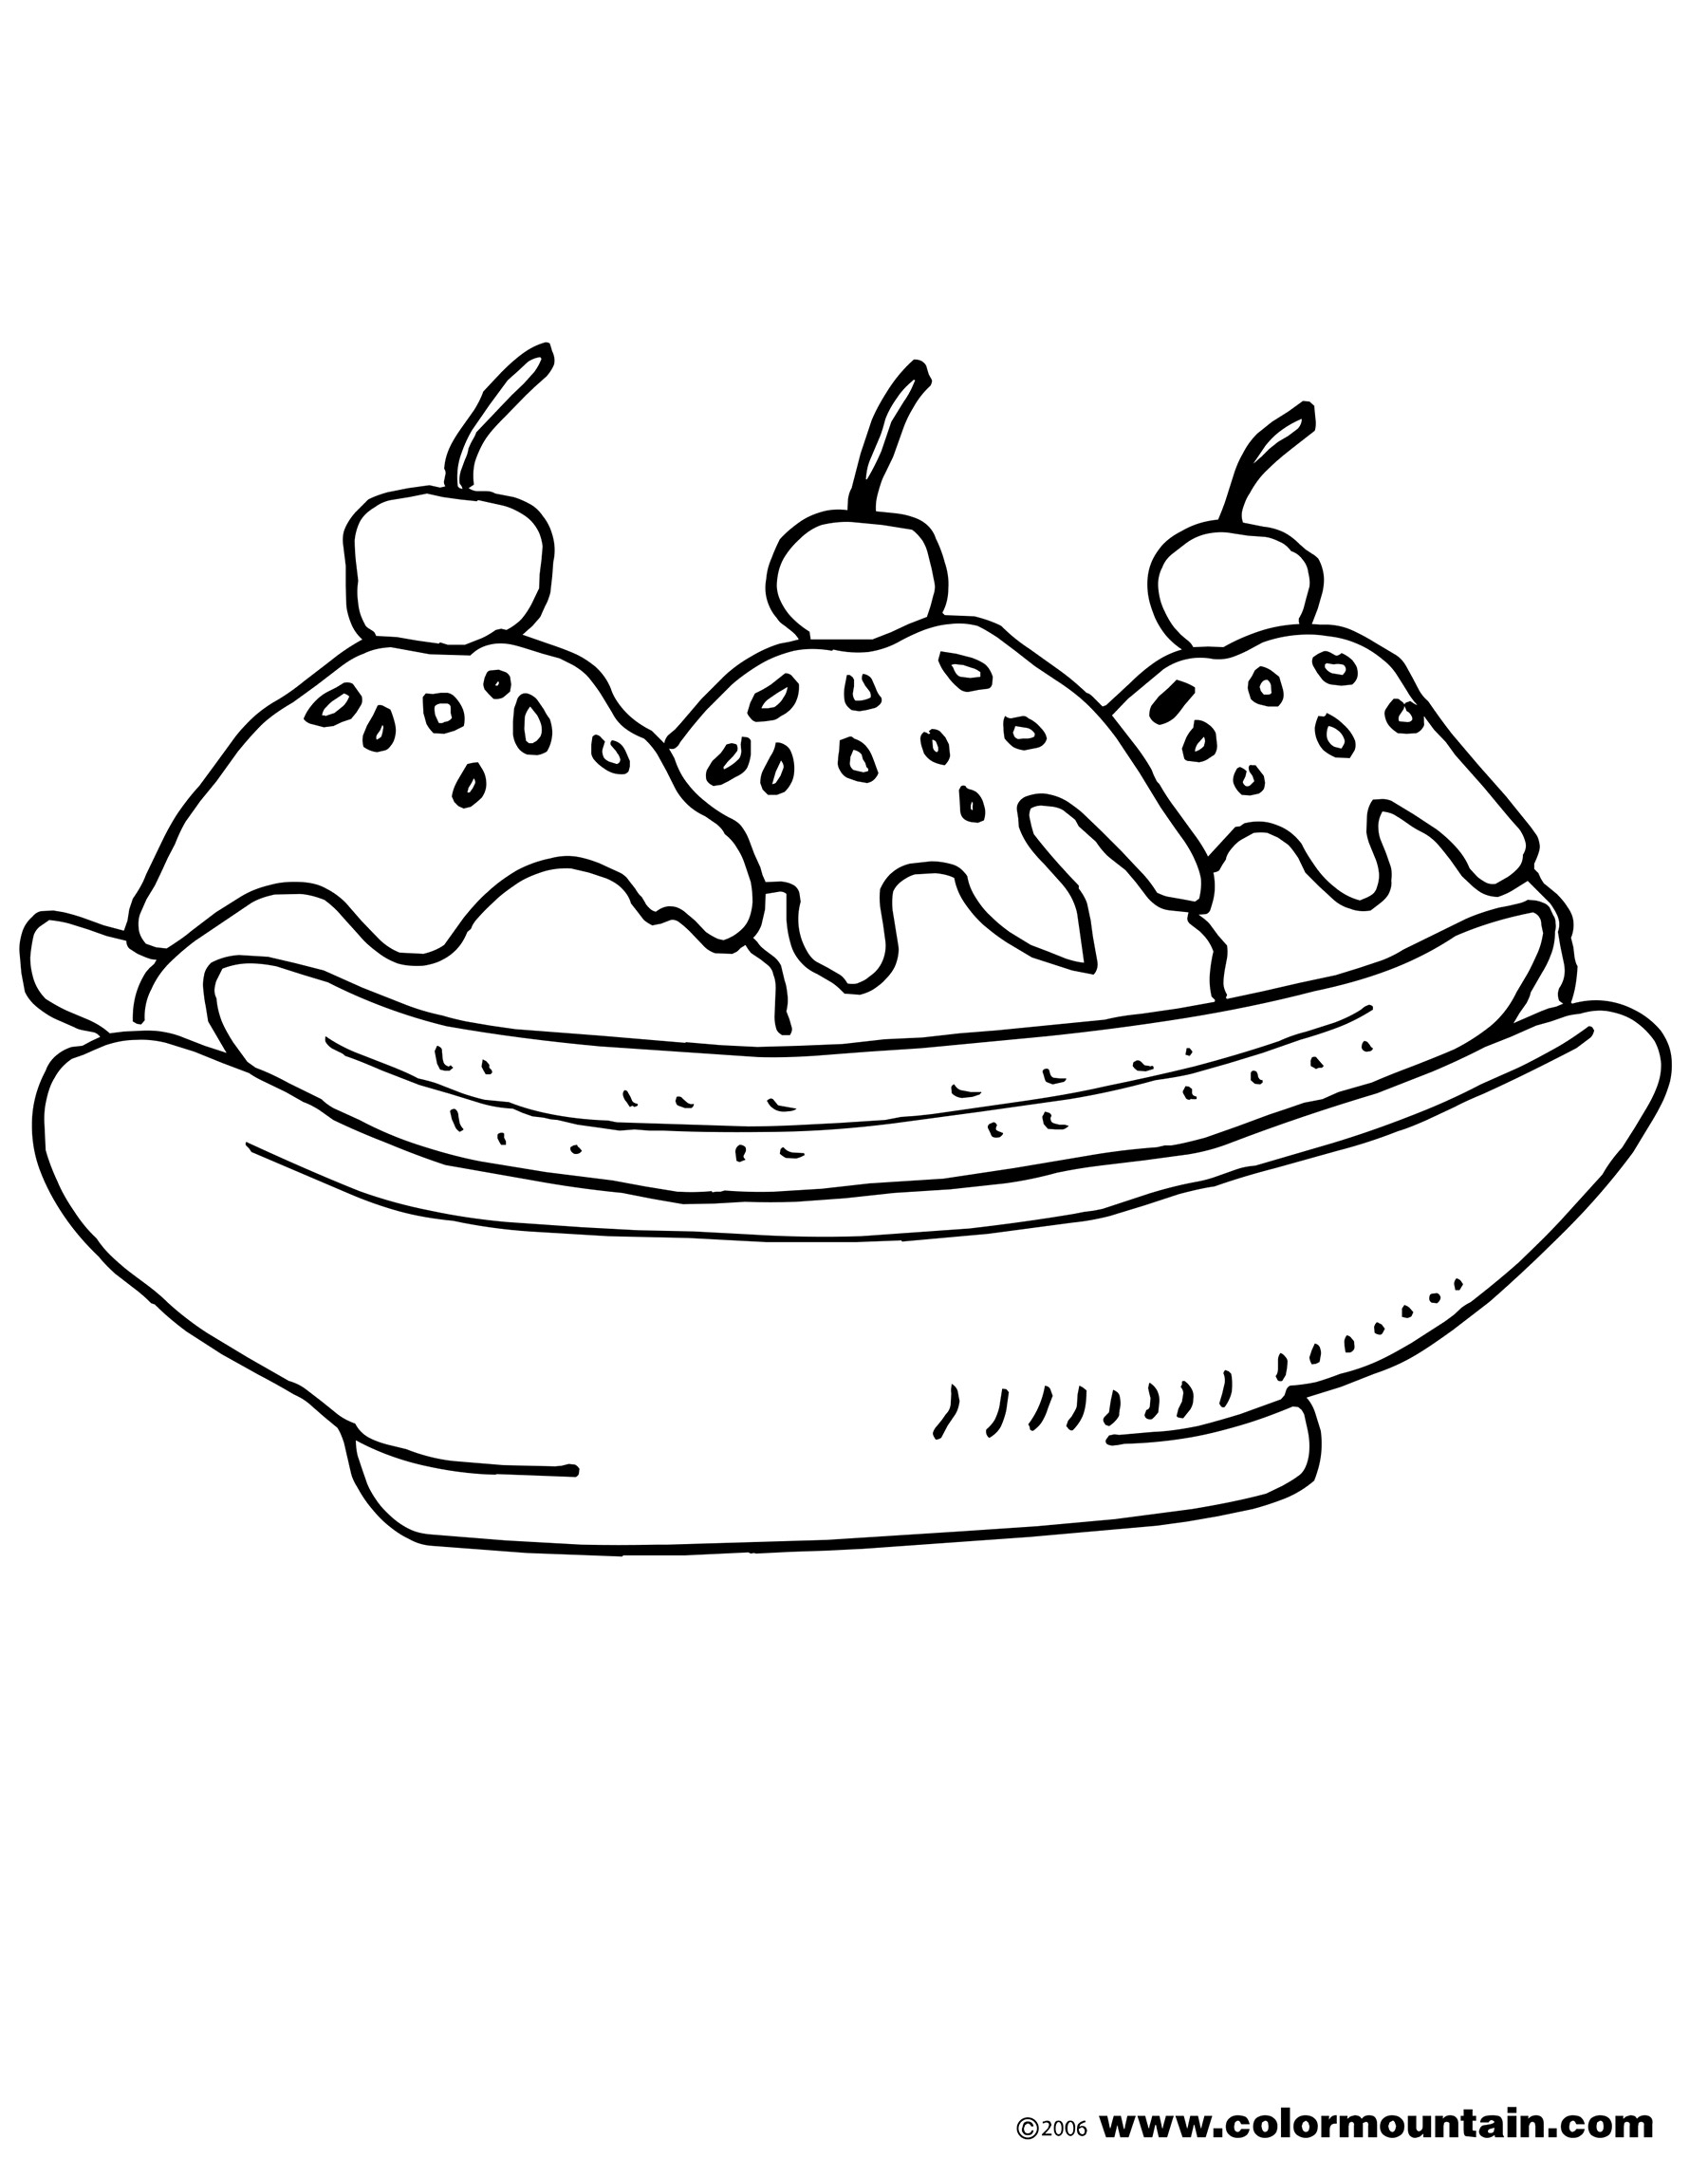 banana split coloring page banana split coloring pages for kids best place to color split coloring banana page